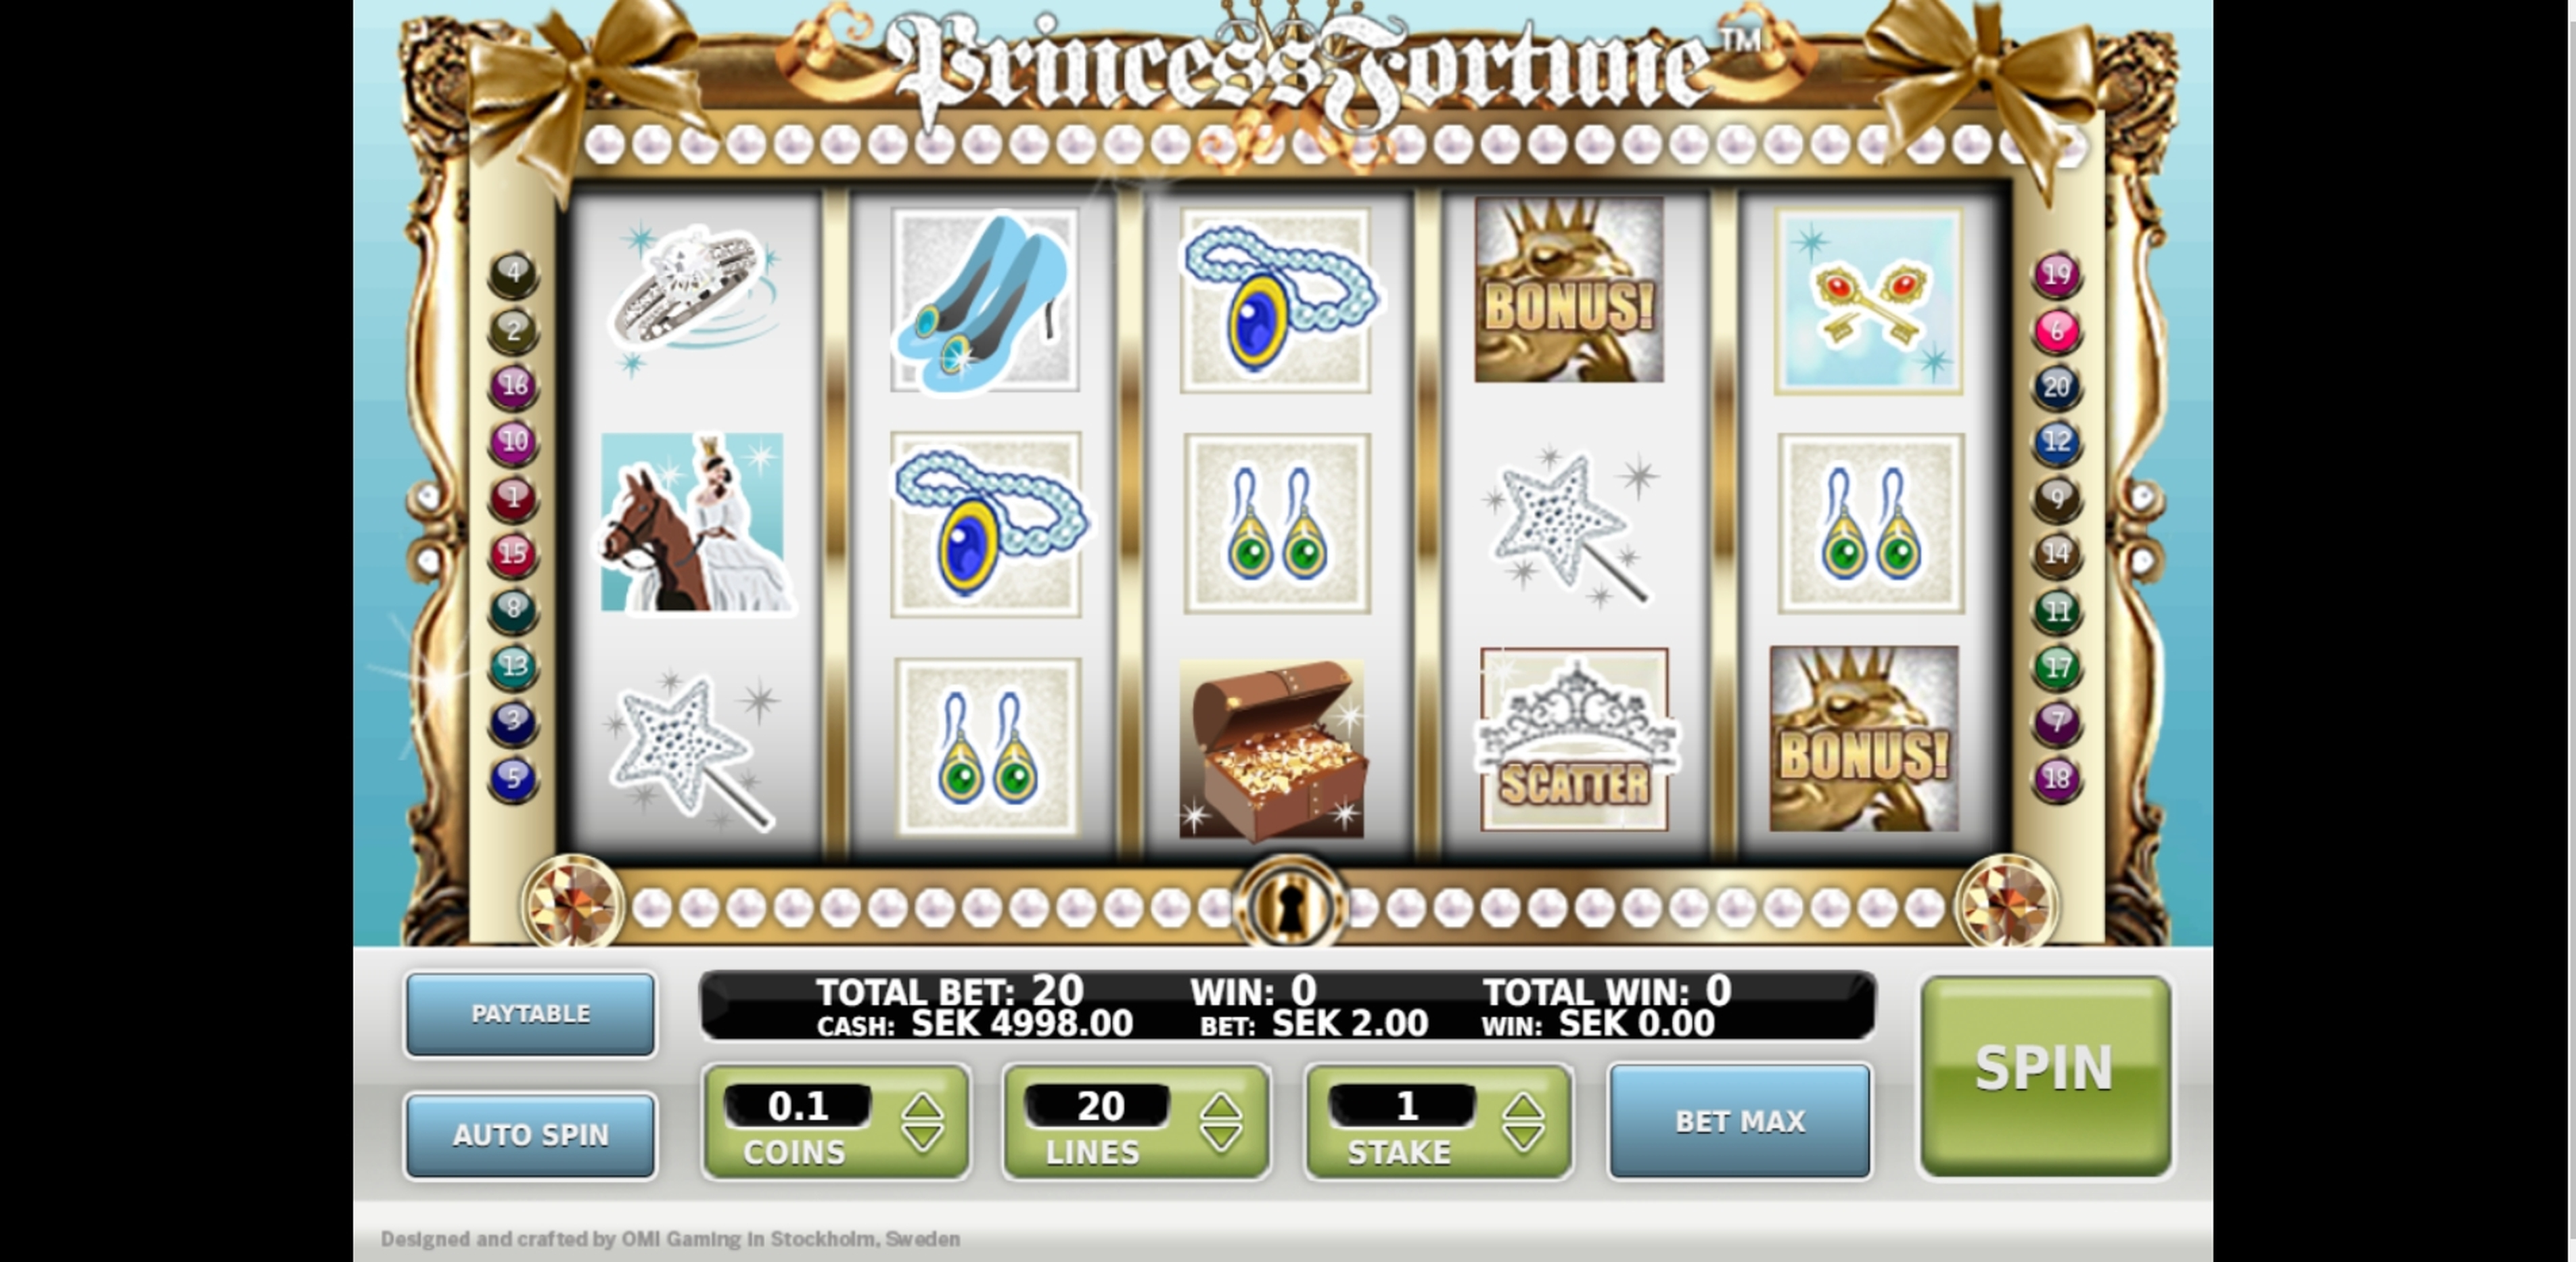 Reels in Princess Fortune Slot Game by OMI Gaming